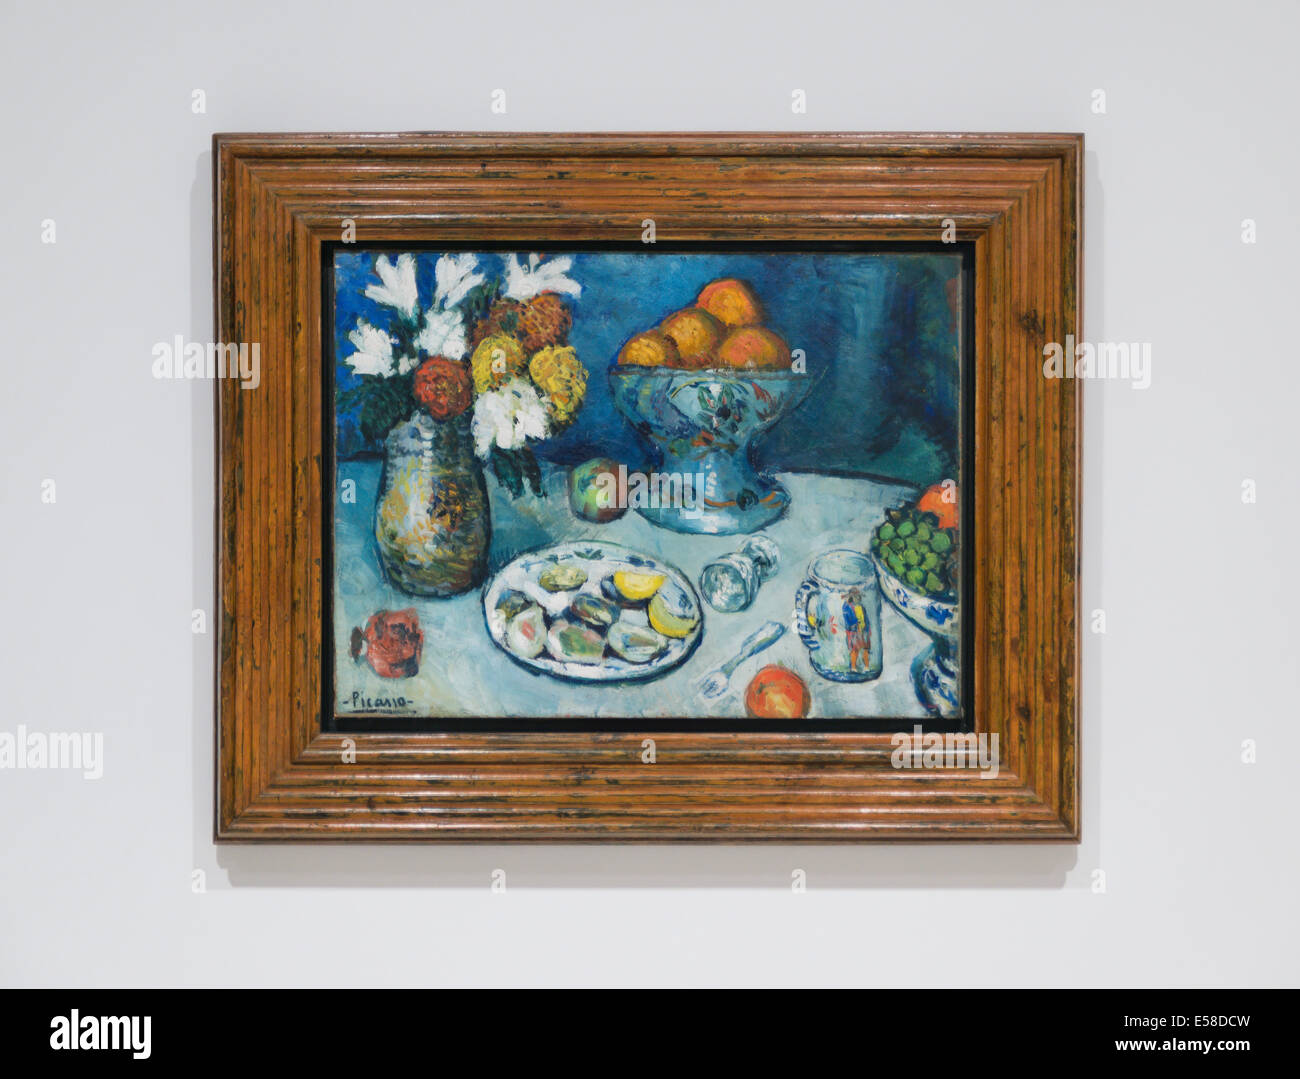 Picasso Still Life oil on canvas, 1901, Museu Picasso of Barcelona, Spain - Stock Image